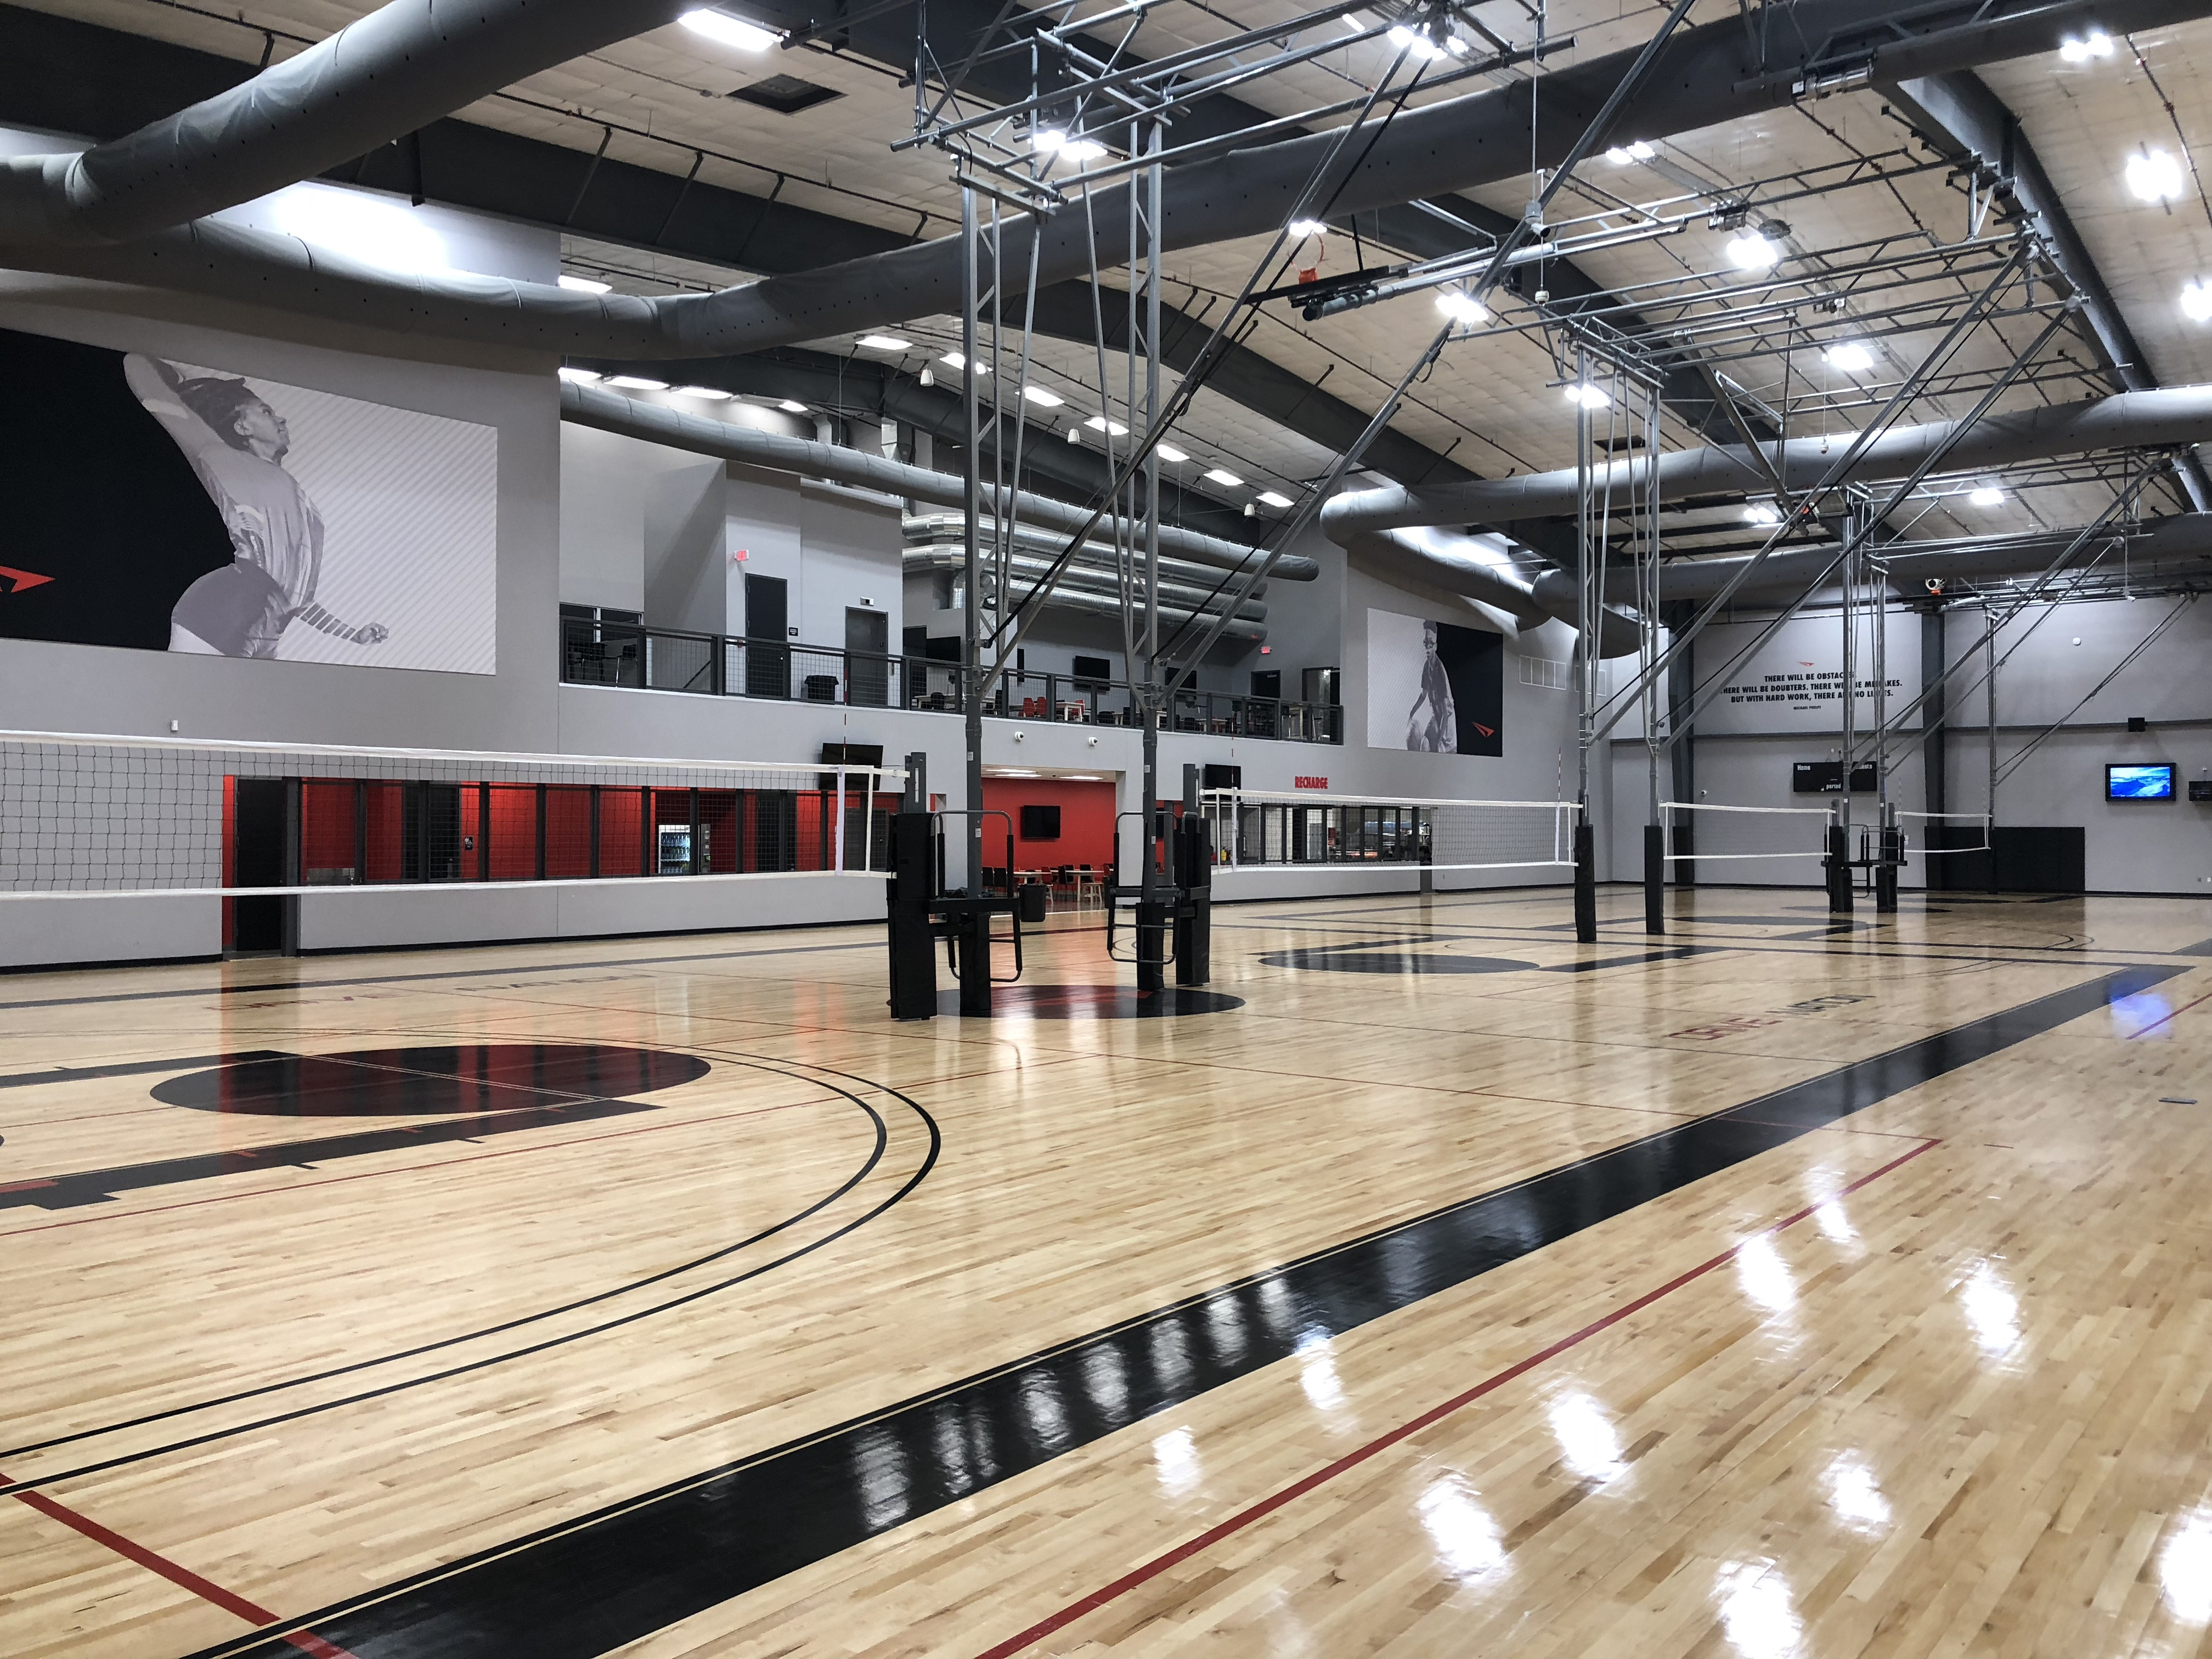 a to z hardwood flooring of volleyball gared throughout view